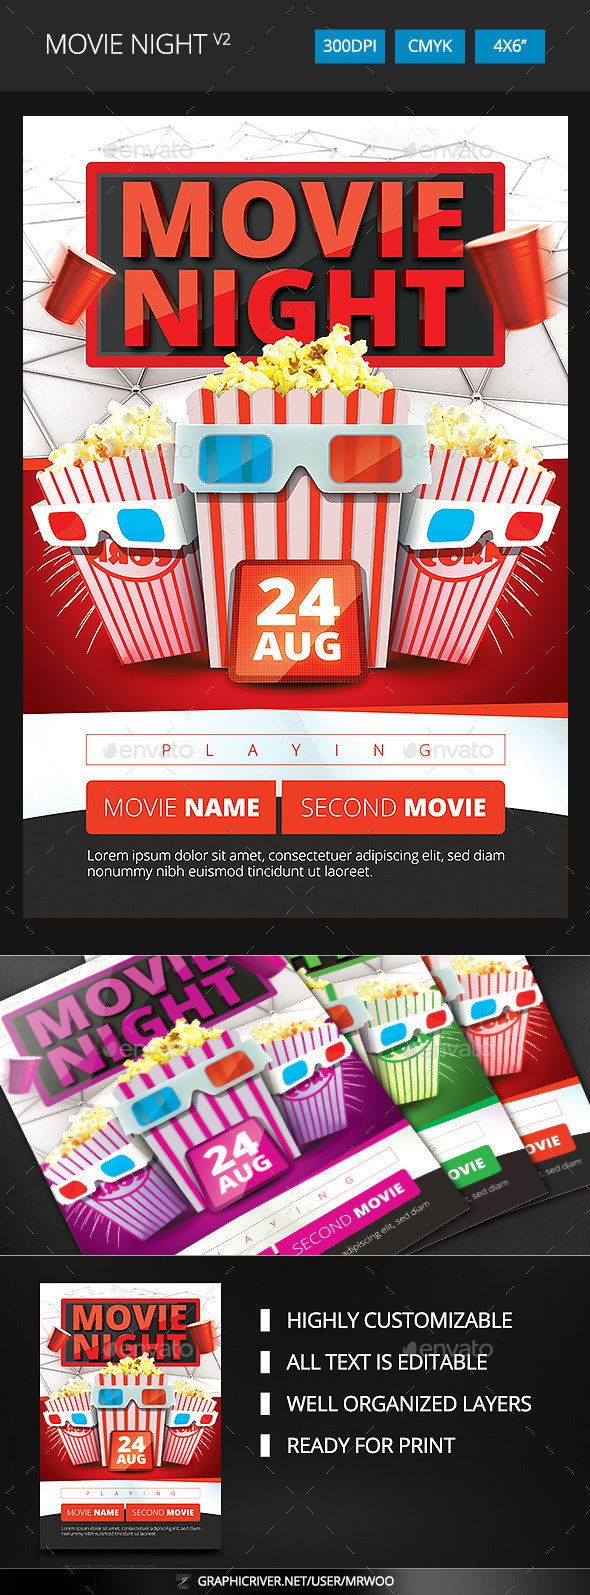 Movie Night Flyer v2 - Clubs & Parties Events